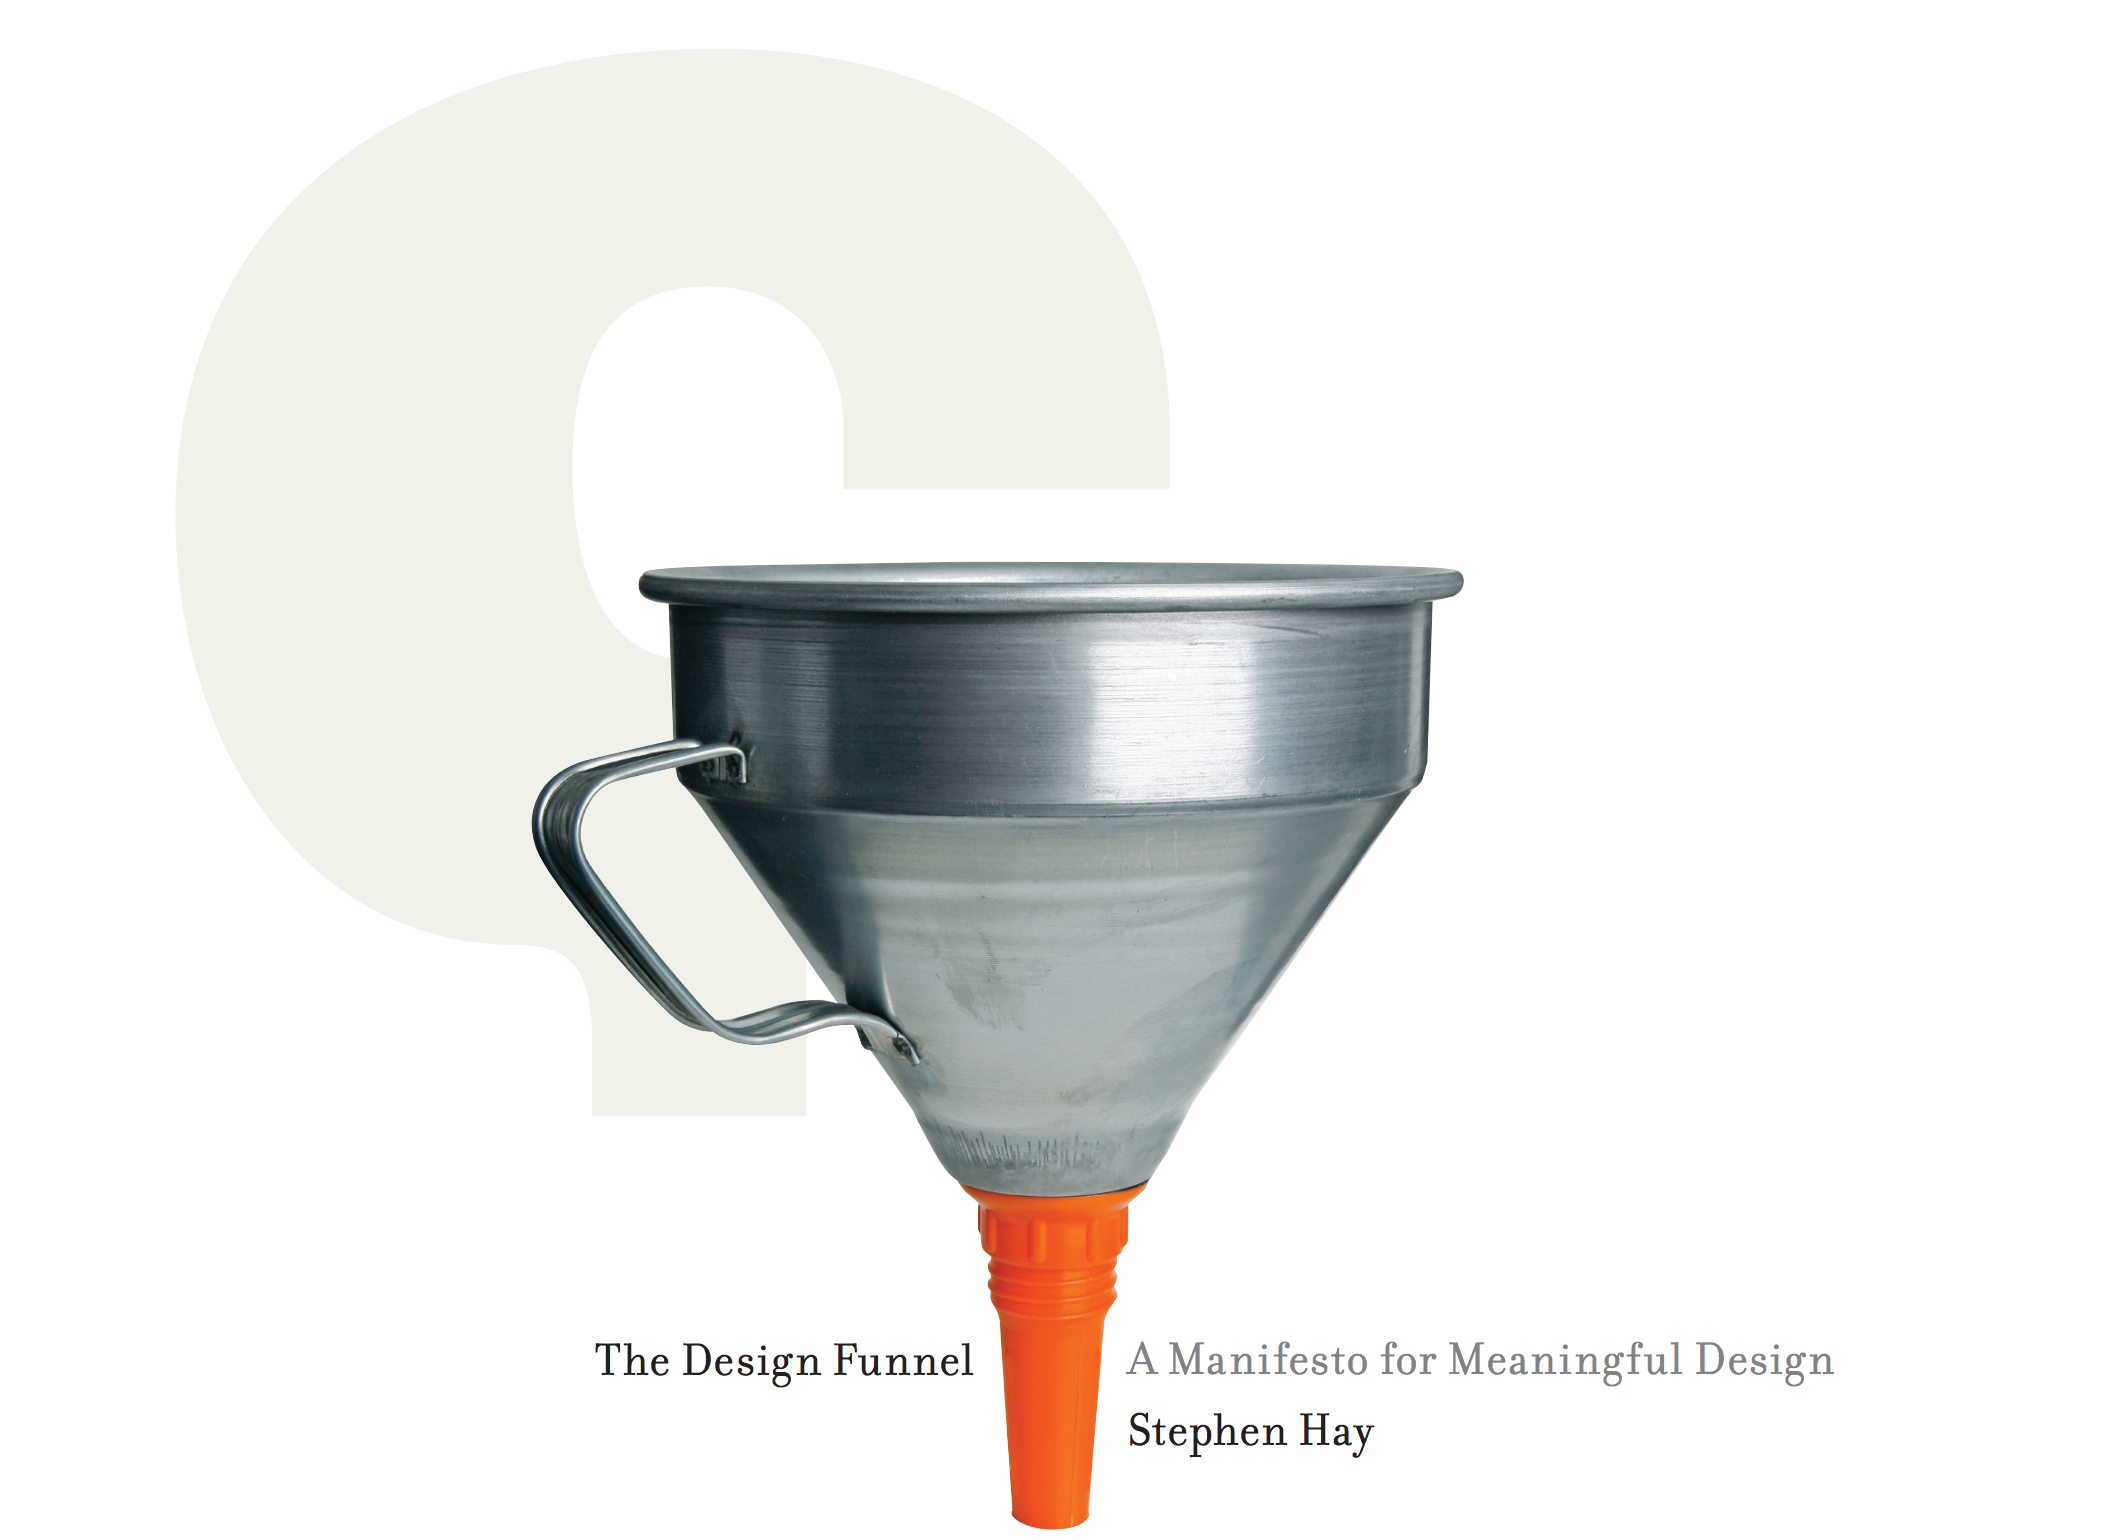 blog introcrea ebooks gratuitos que todo diseñador debe leer The Design Funnel — Stephen Hay